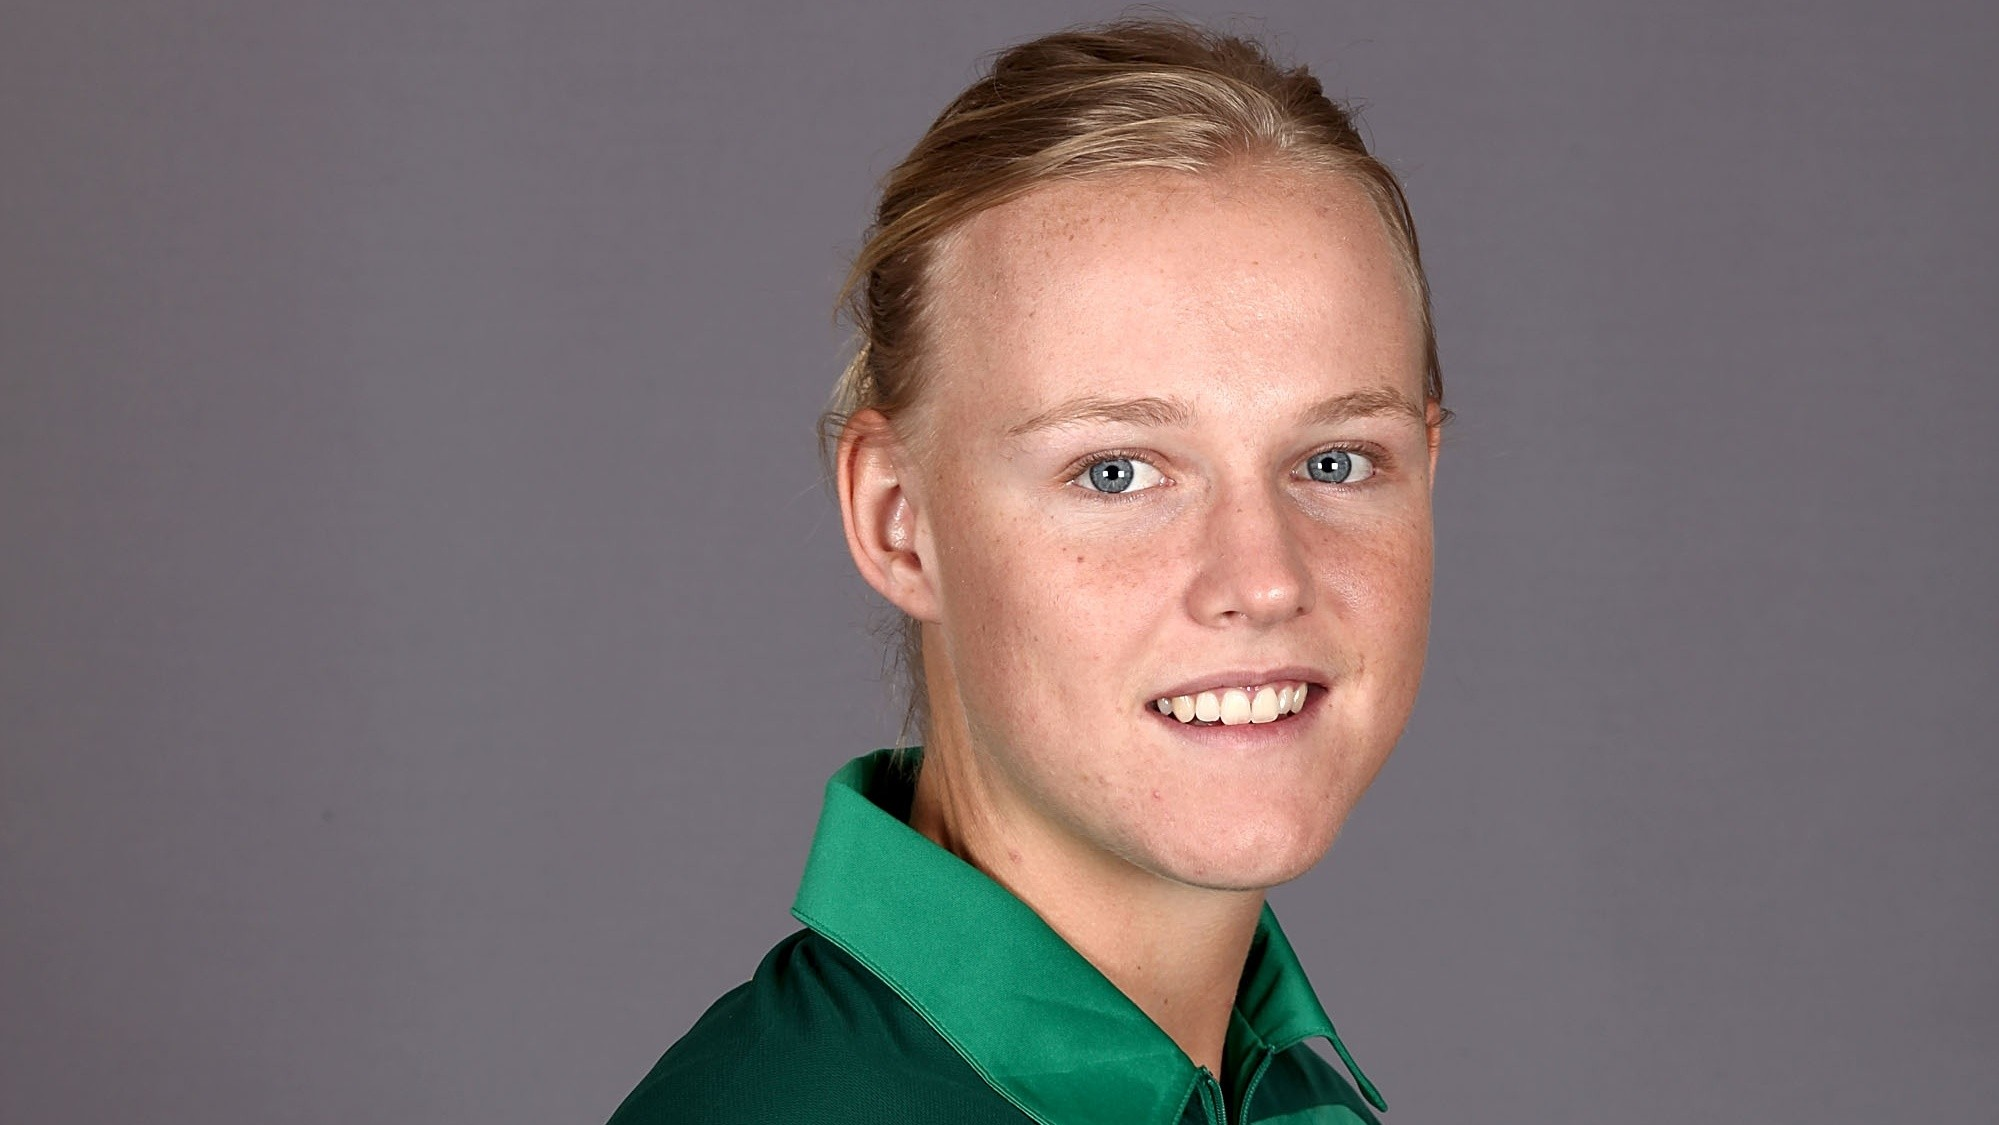 South African women's all-rounder Elriesa Theunissen-Fourie tragically dies in a car accident